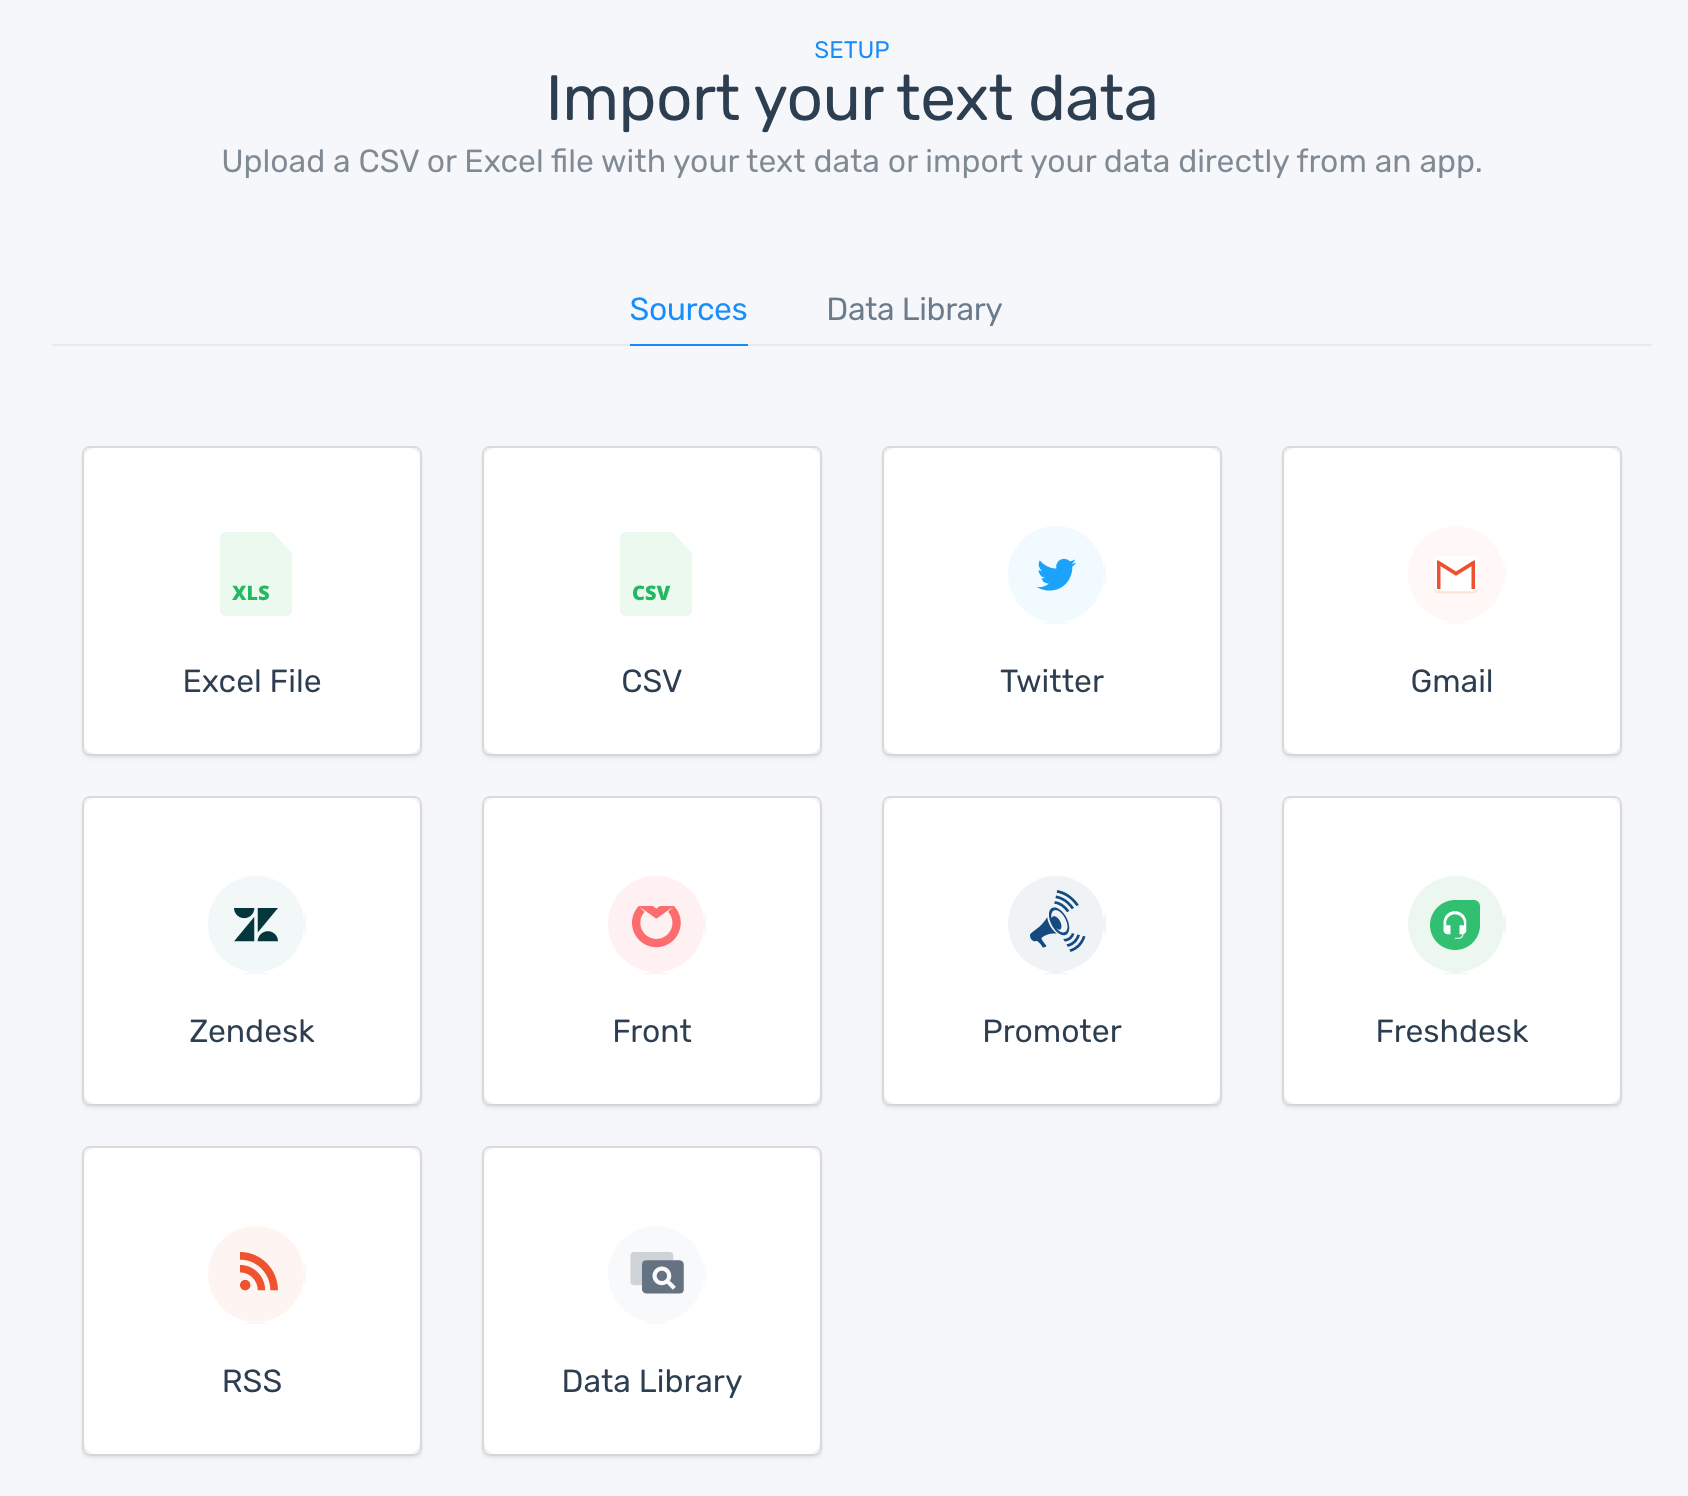 Steap 2: upload your data from an Excel or CSV file